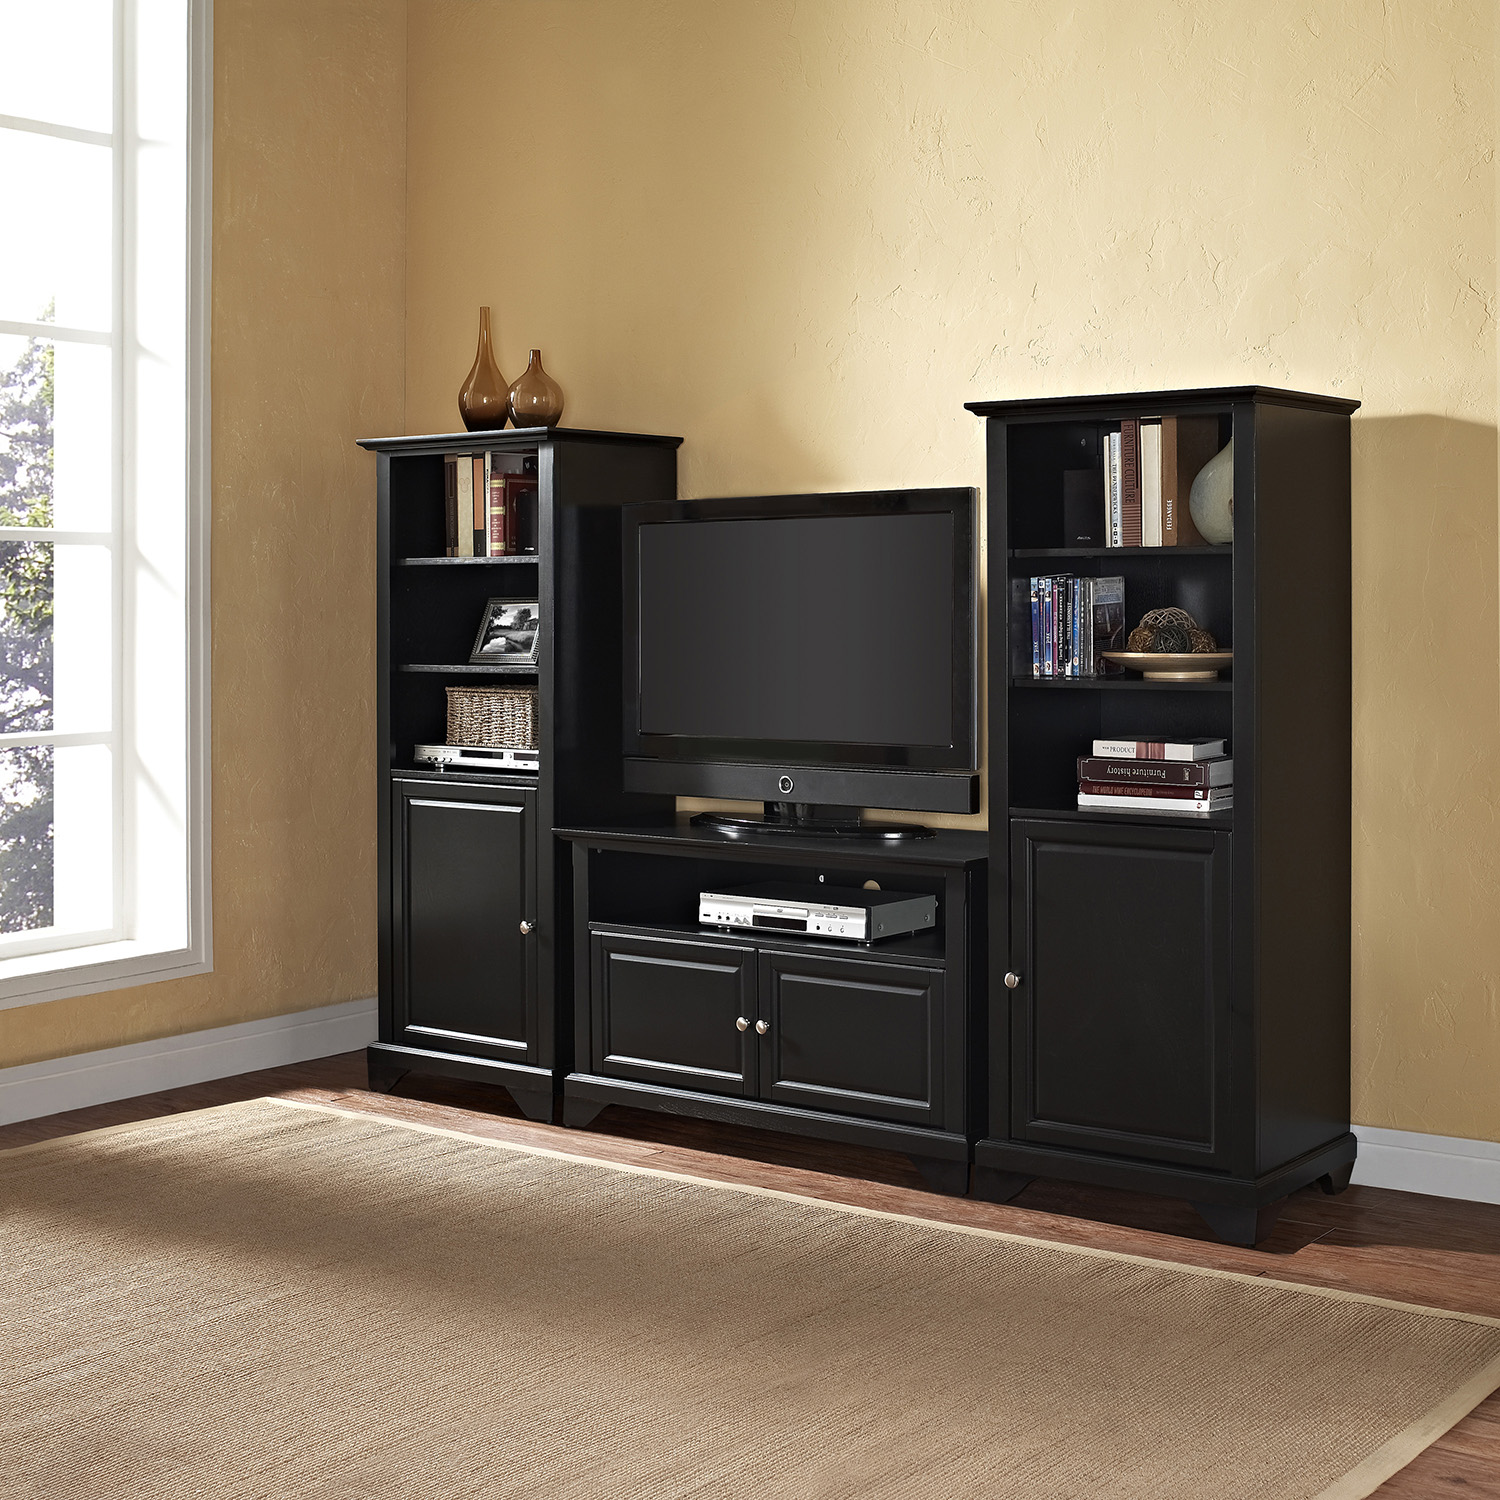 "LaFayette 42"" TV Stand and Two 60"" Audio Piers - Black - CROS-KF100007BBK"